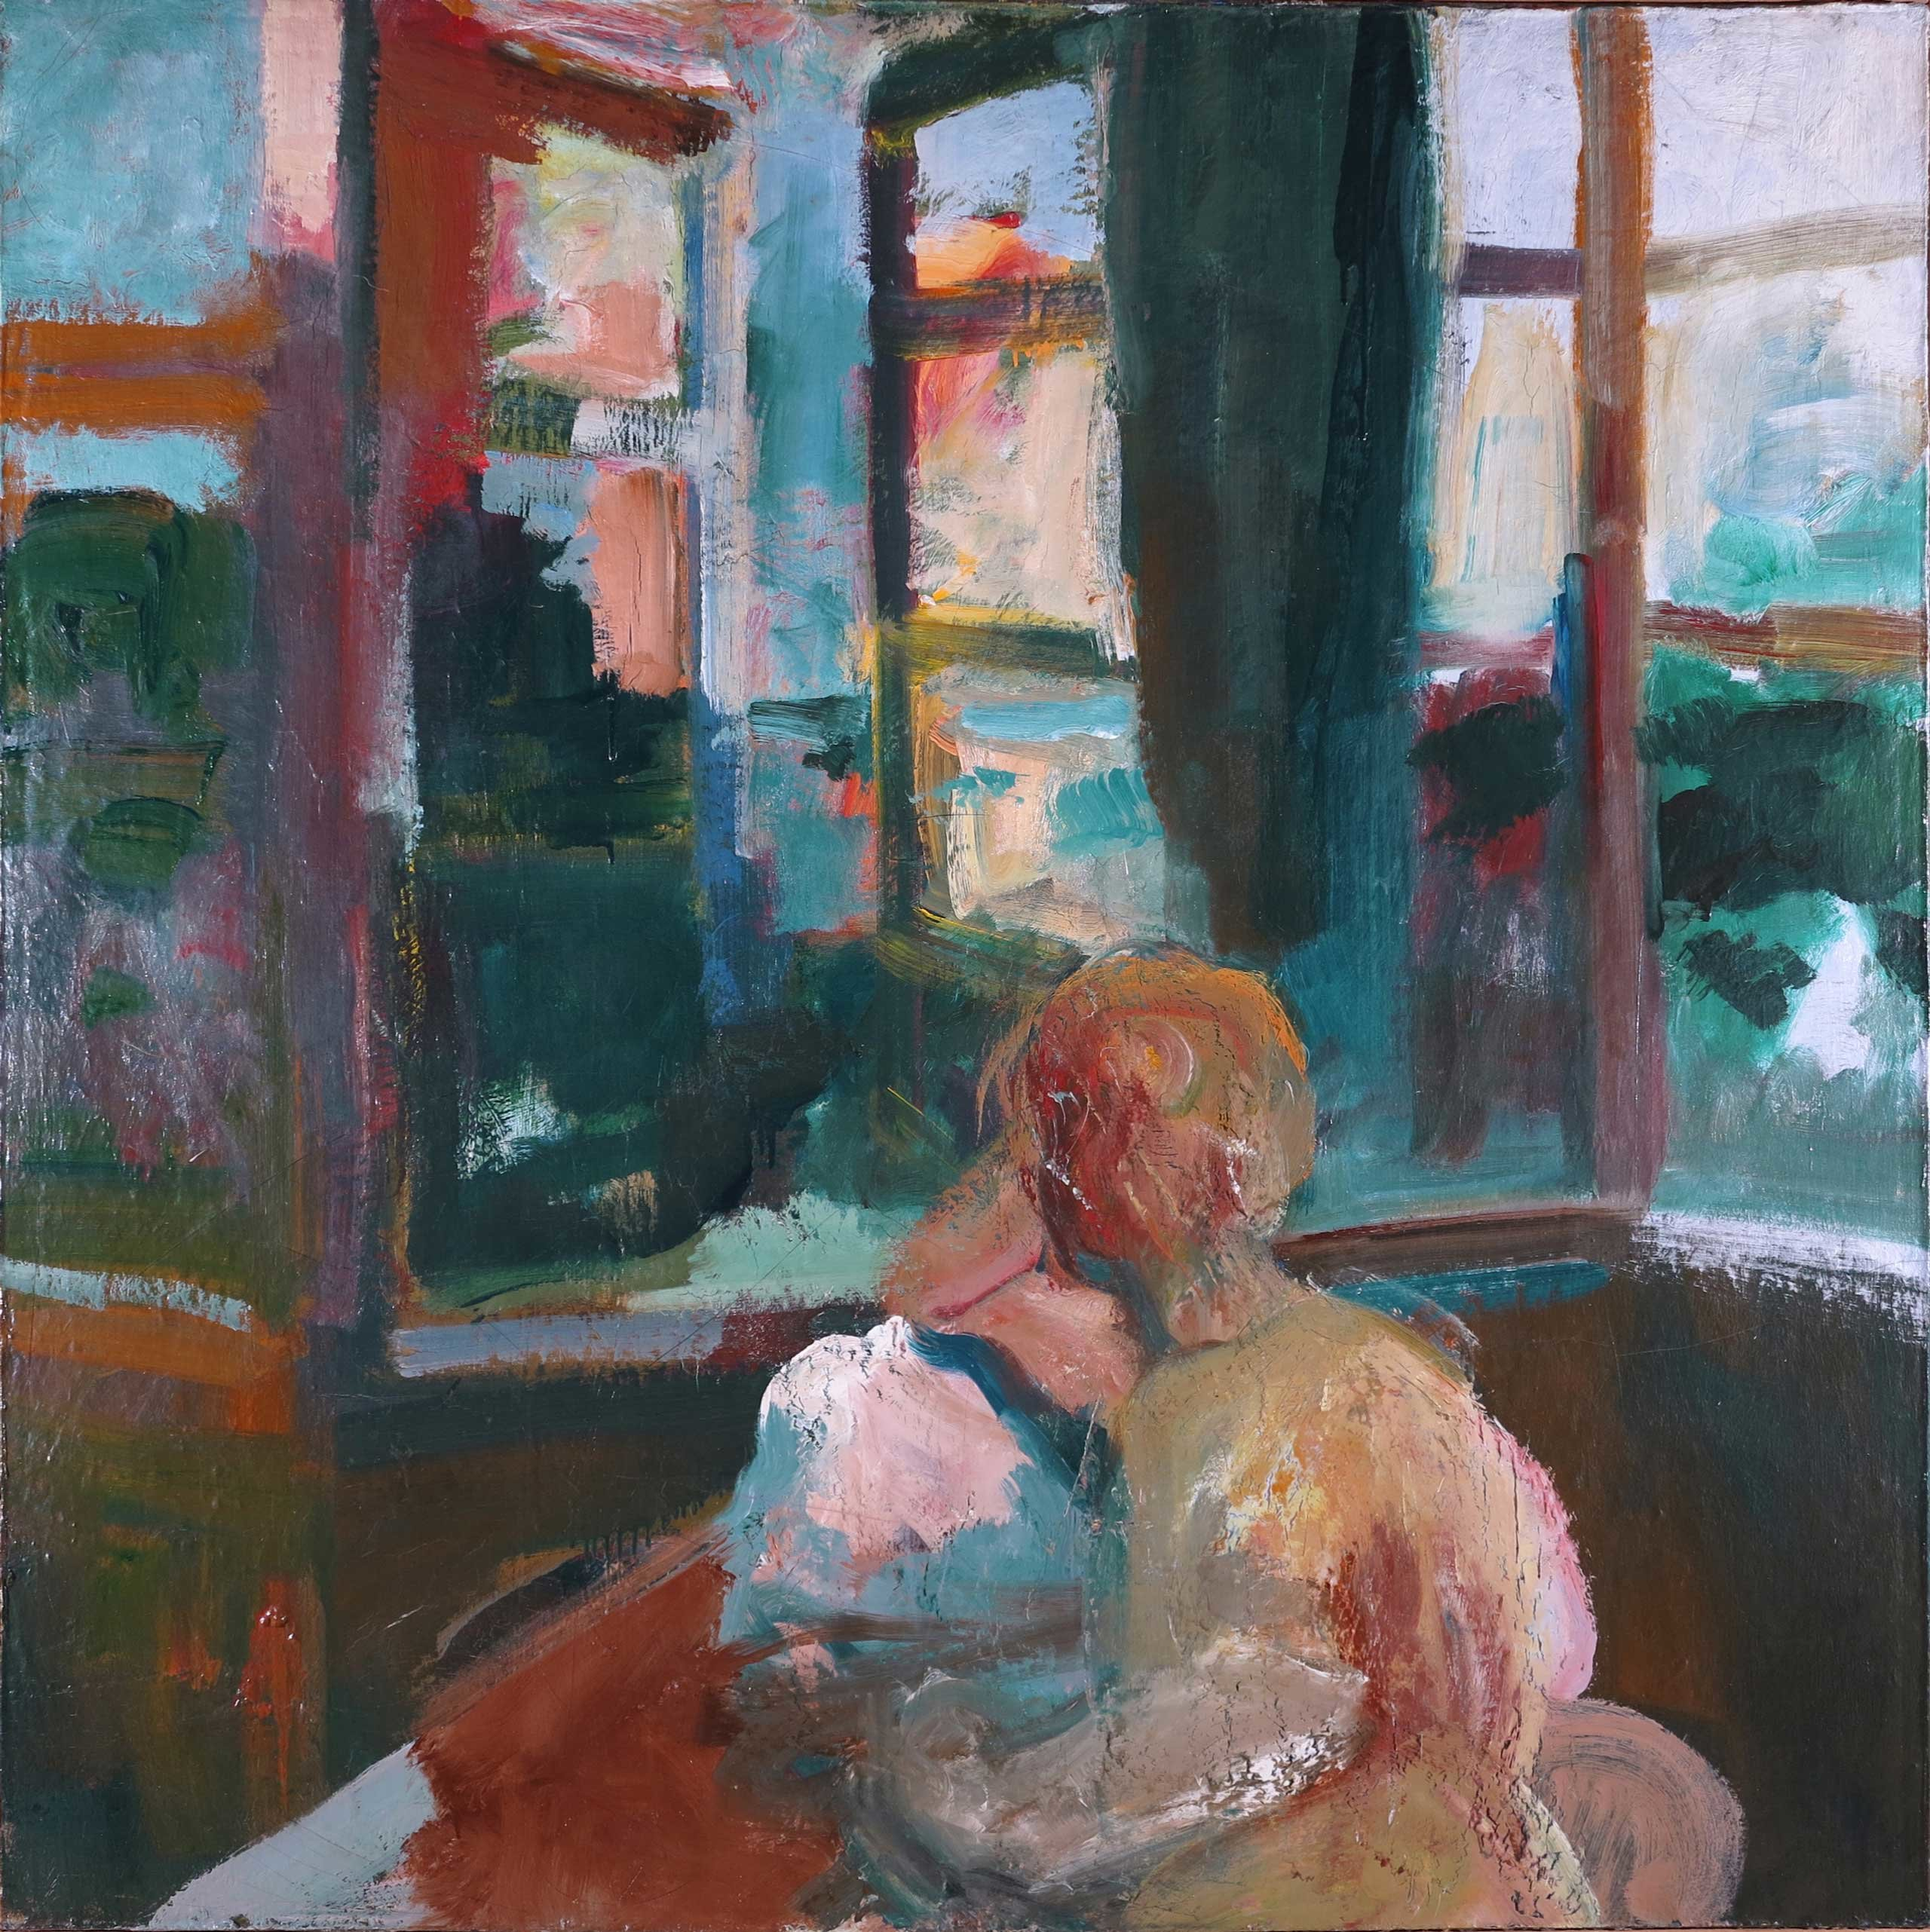 Elmer Bischoff, Woman Reading Near Window, 1959, oil on canvas, 57 x 57 inches (